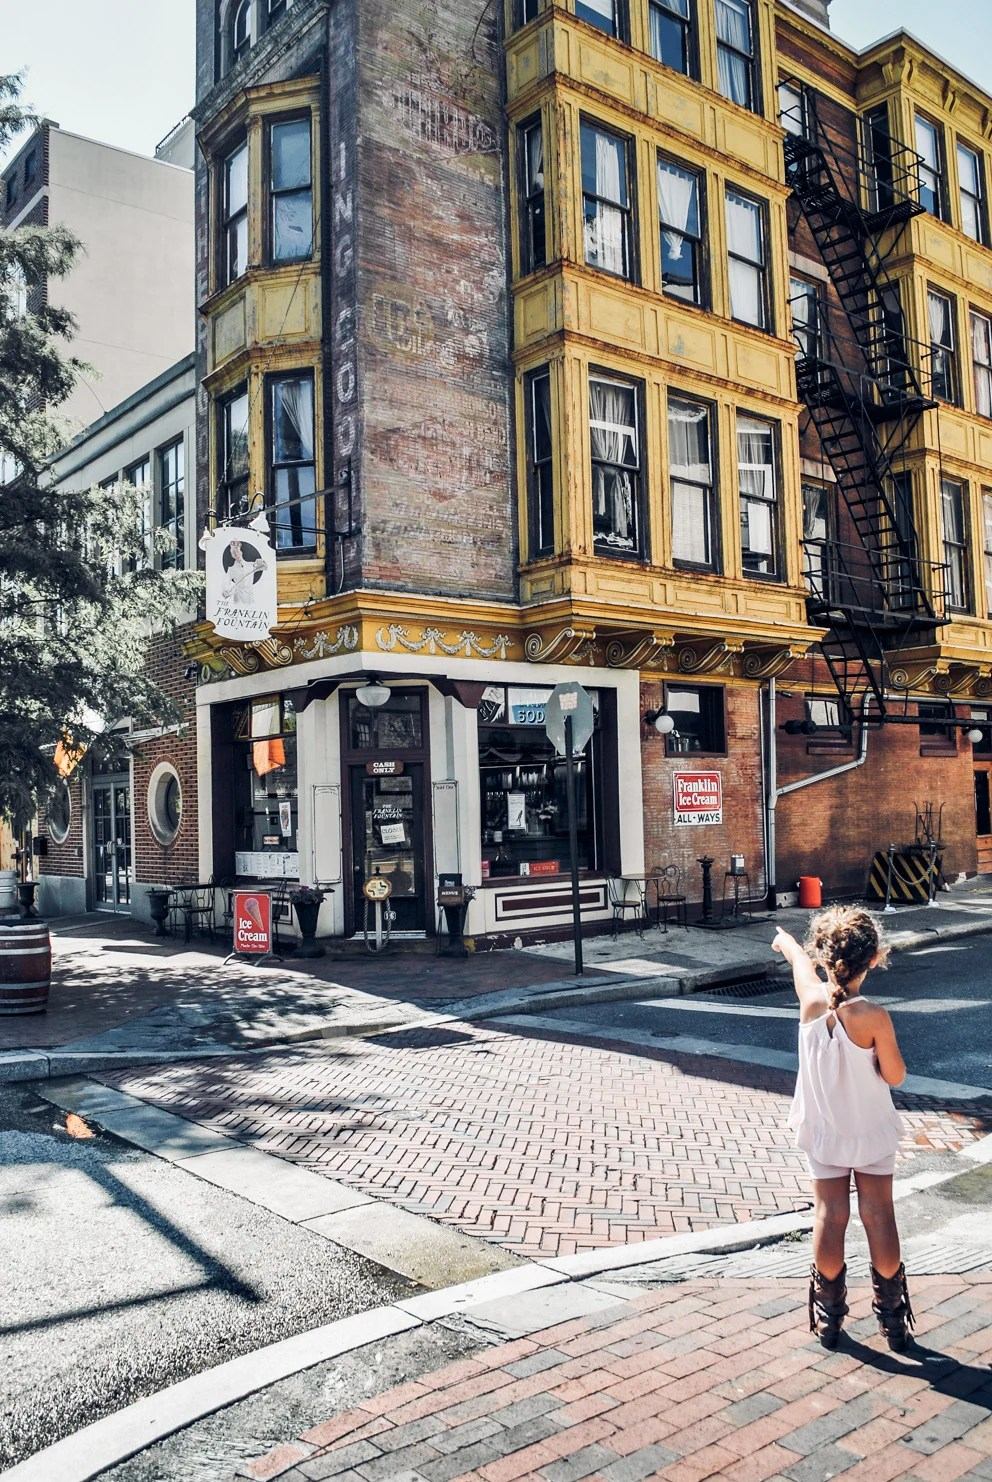 Lifestyle Blogger Jenny Meassick of Chocolate and Lace shares her Ice Cream Guide for visiting the Historic District in Philadelphia.